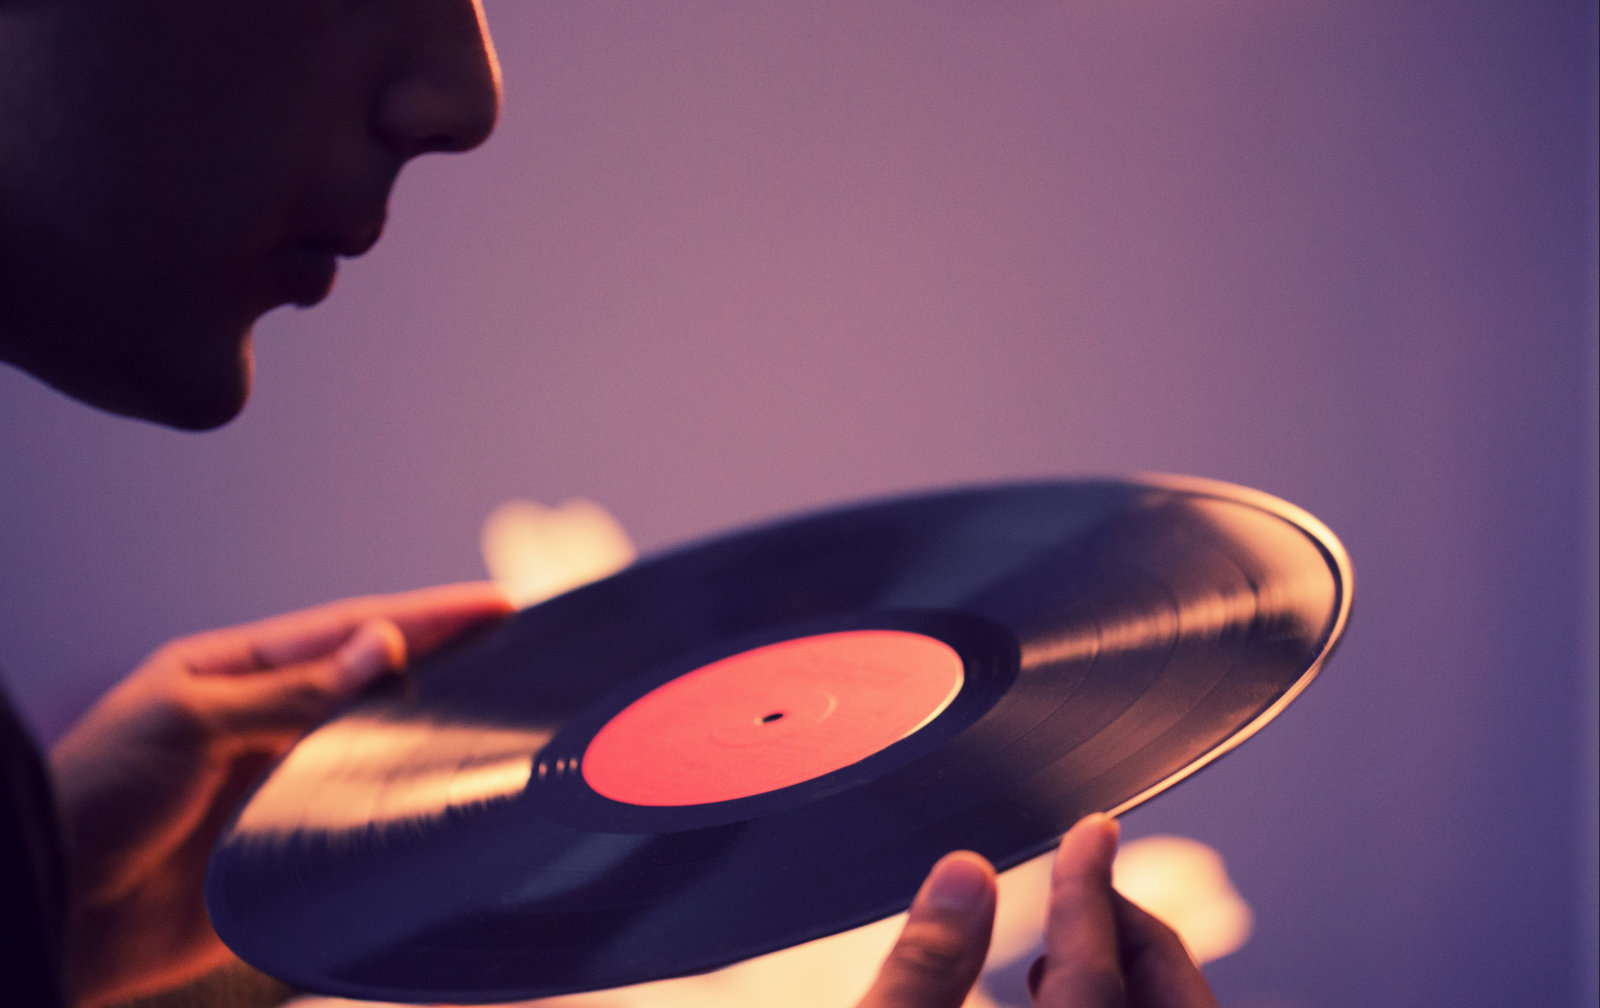 Man cleaning his old vinyls before playing them.